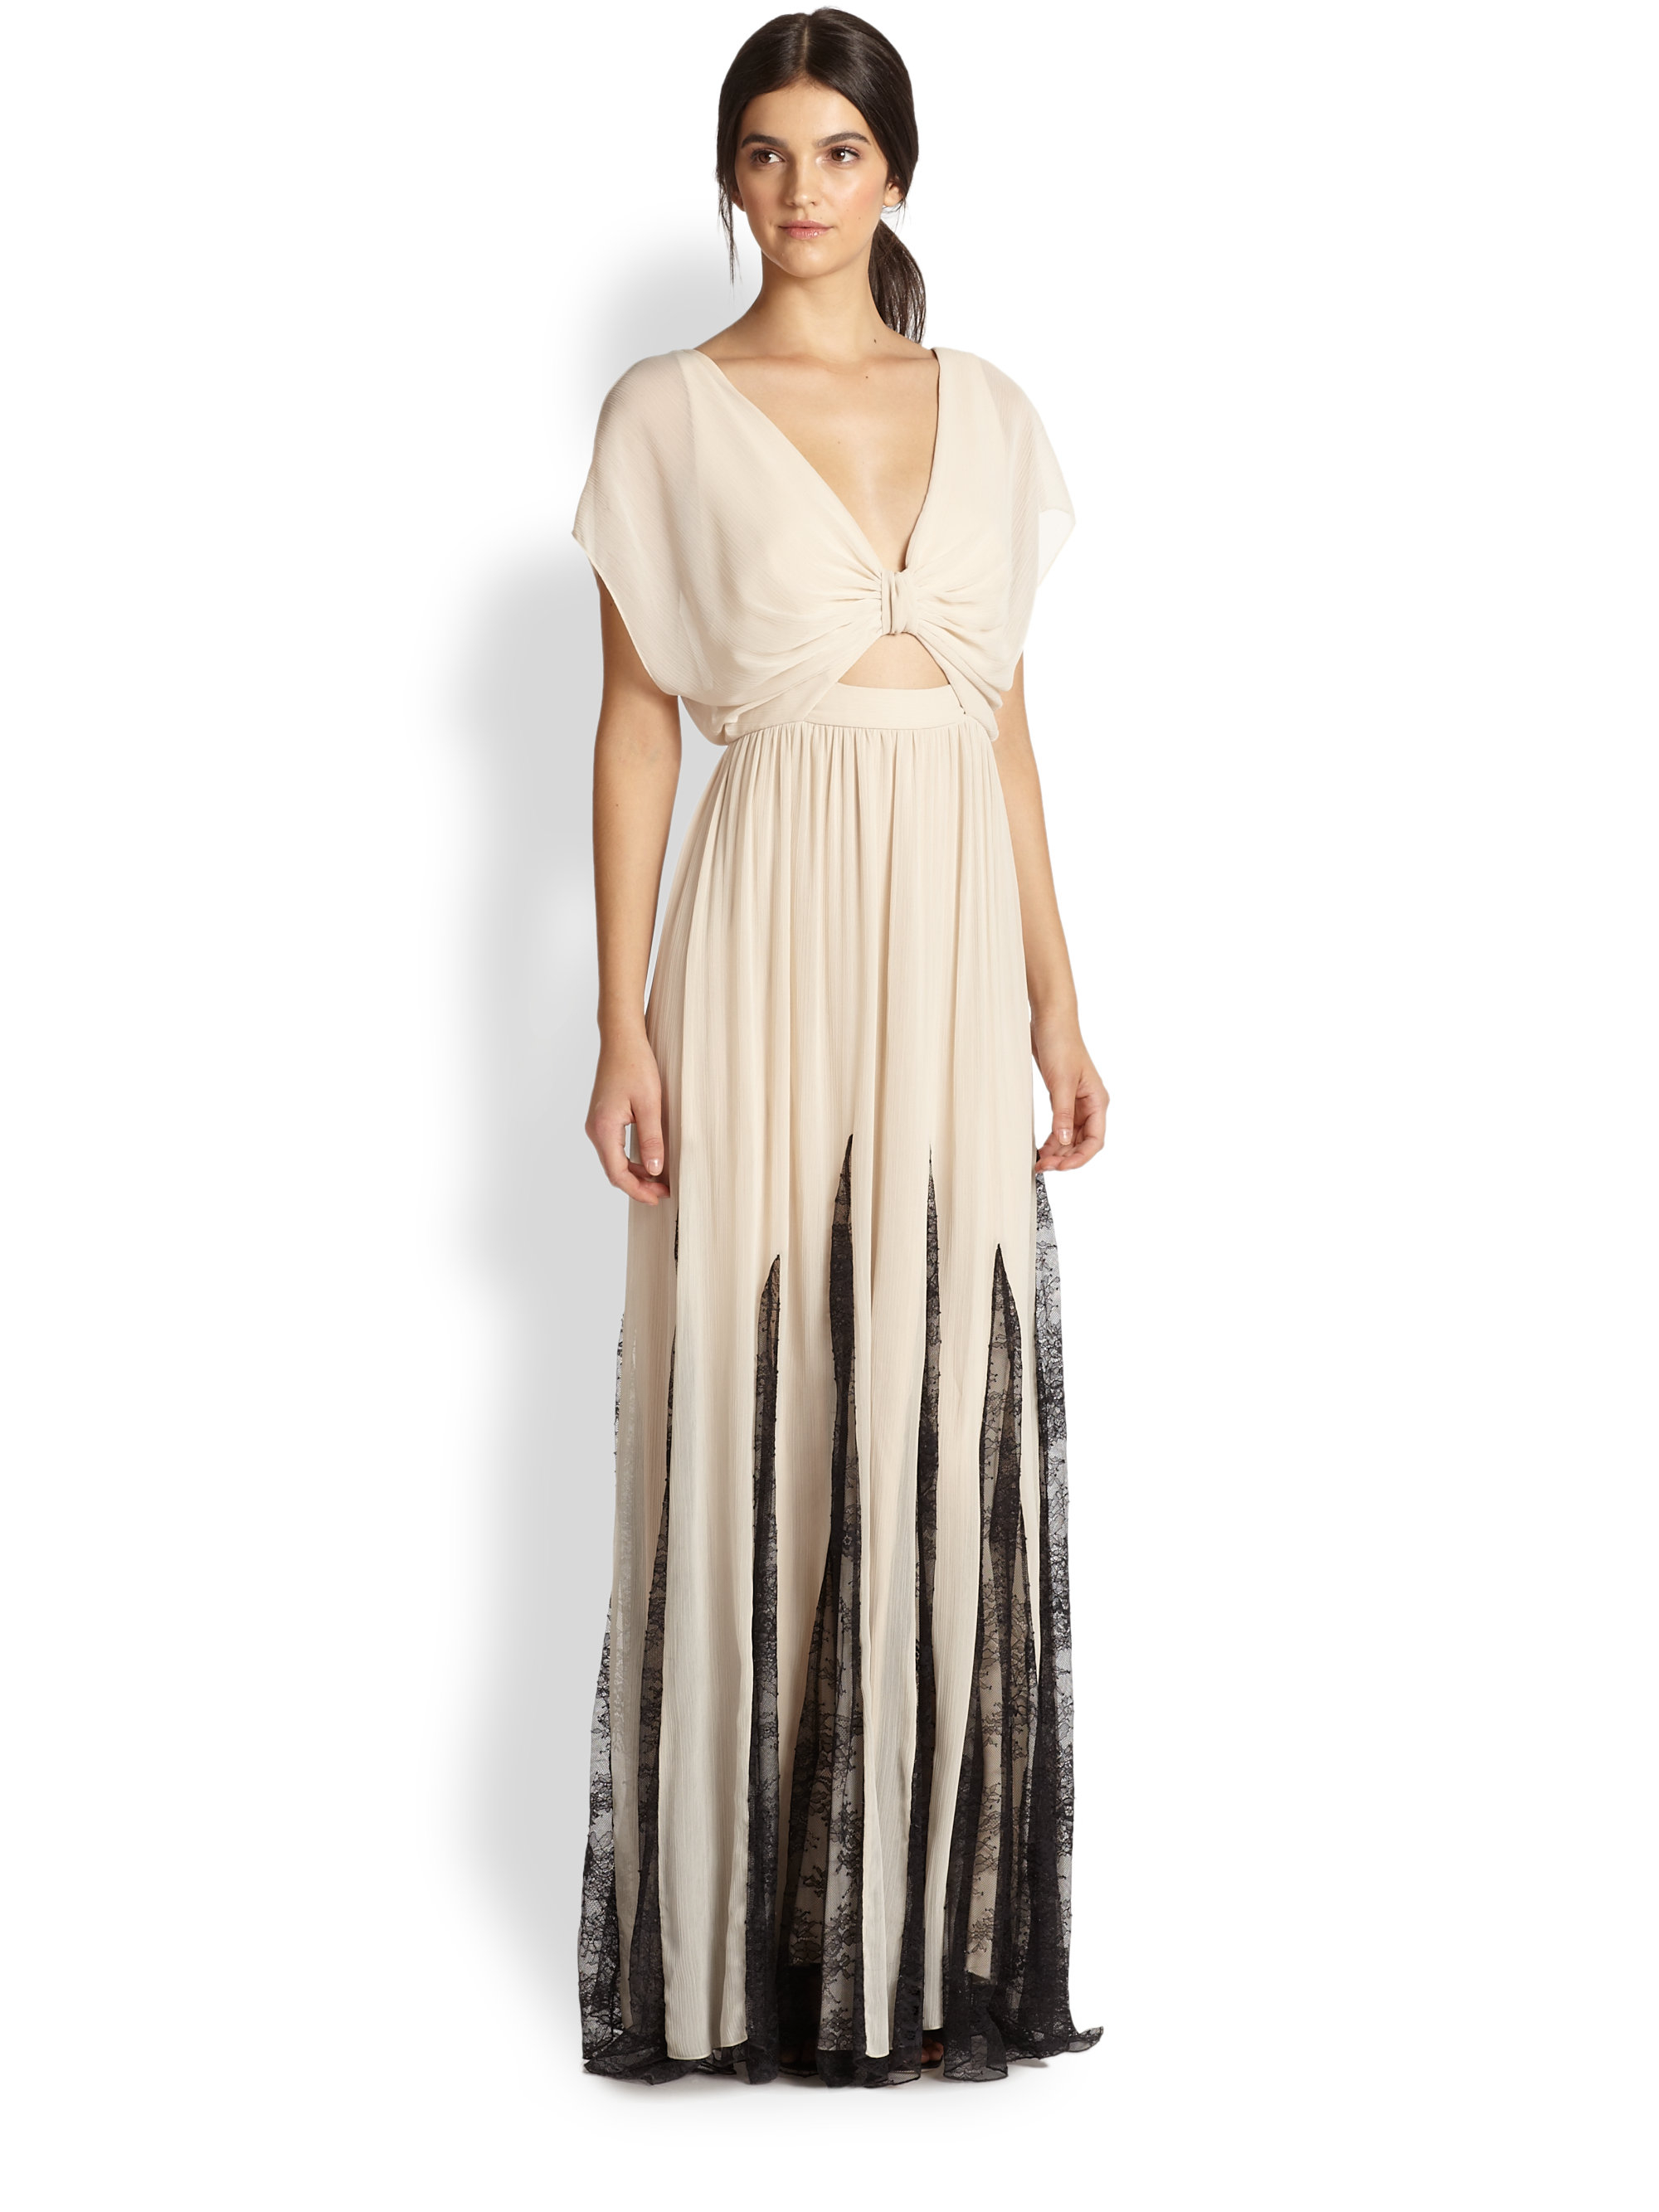 Lyst - Alice + Olivia Ginevia Bow Front Pleated Maxi Dress in Natural bbfc24dc4